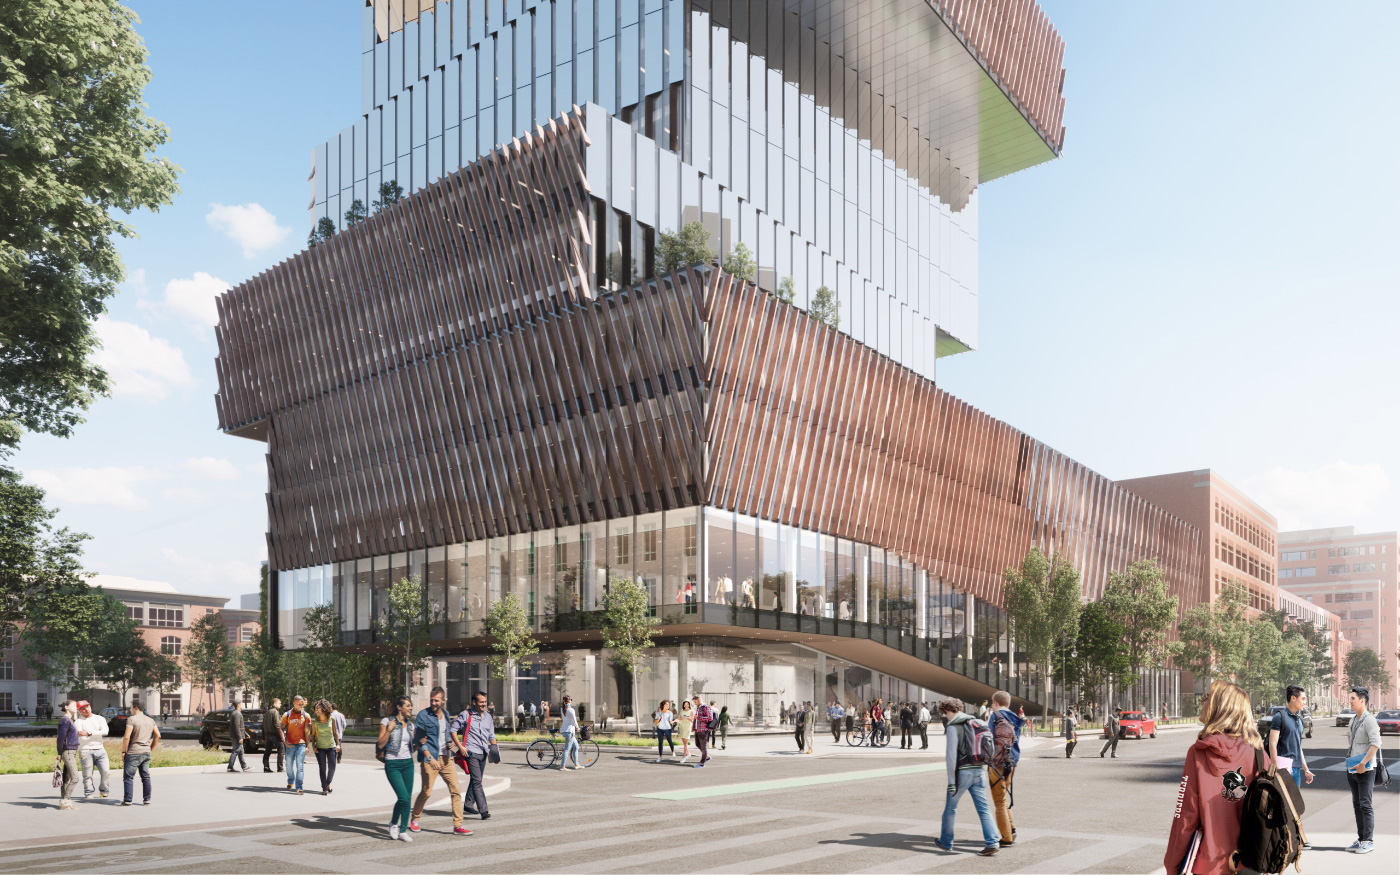 Rendering of a glassy tower with slanted louvers rising on the campus of Boston University